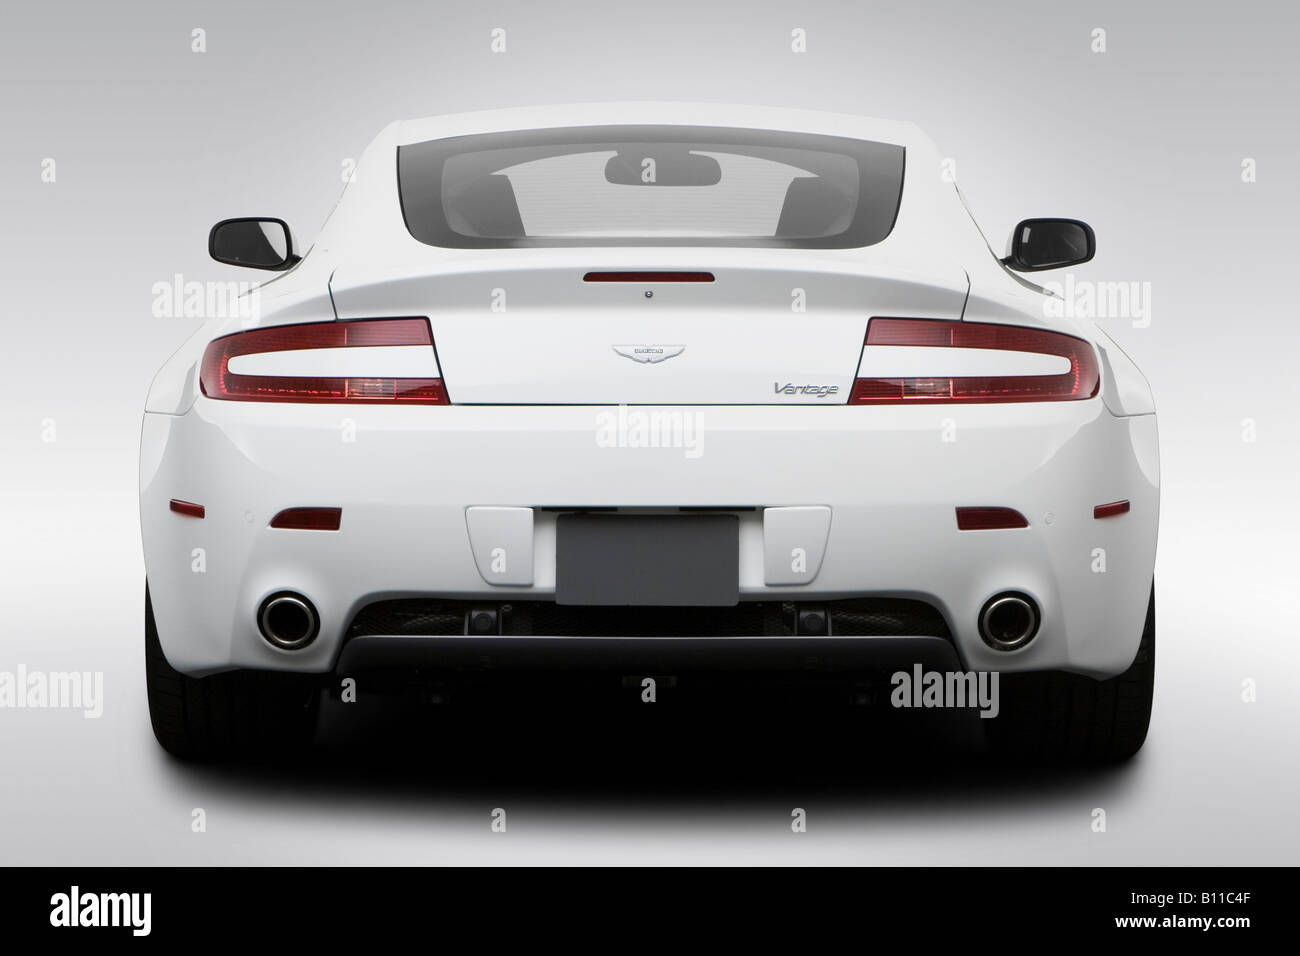 2008 Aston Martin V8 Vantage In White Low Wide Rear Stock Photo Alamy